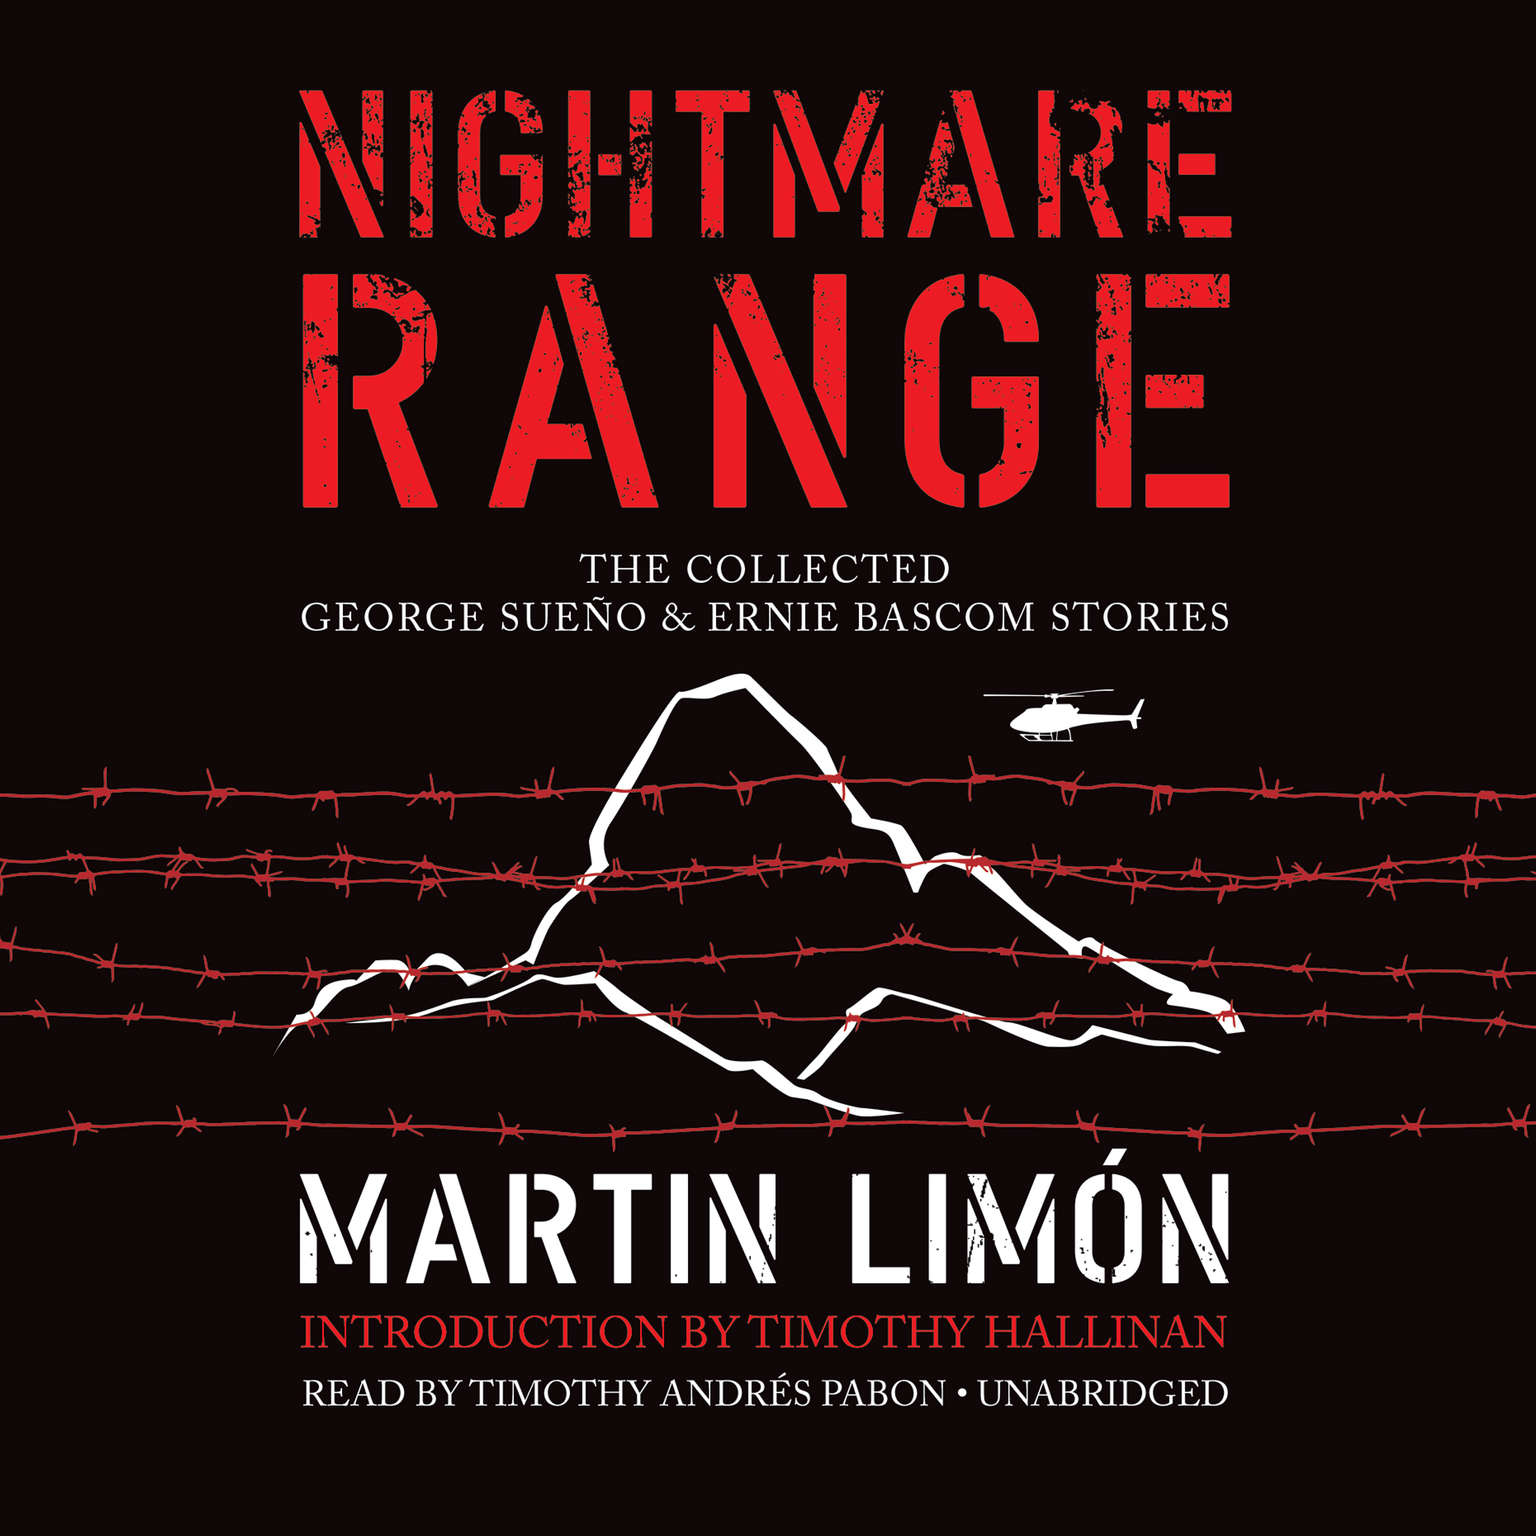 Printable Nightmare Range: The Collected George Sueño & Ernie Bascom Stories Audiobook Cover Art